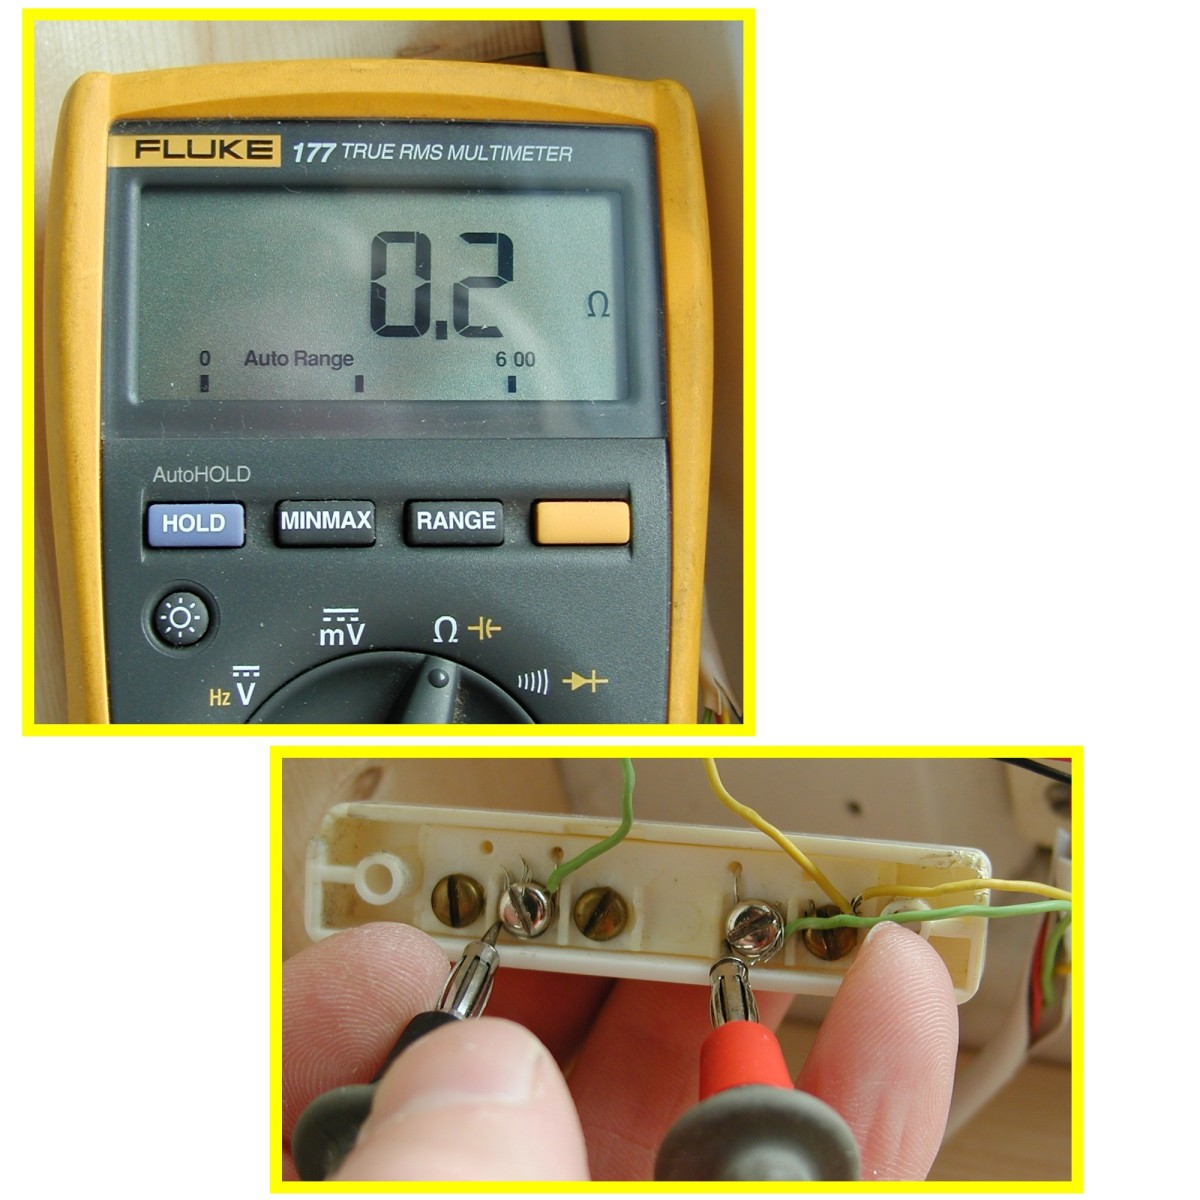 Set the DMM to the ohms range and measure resistance between screw terminals of contacts. The loop should be disconnected at the alarm panel to remove voltage from the contacts.